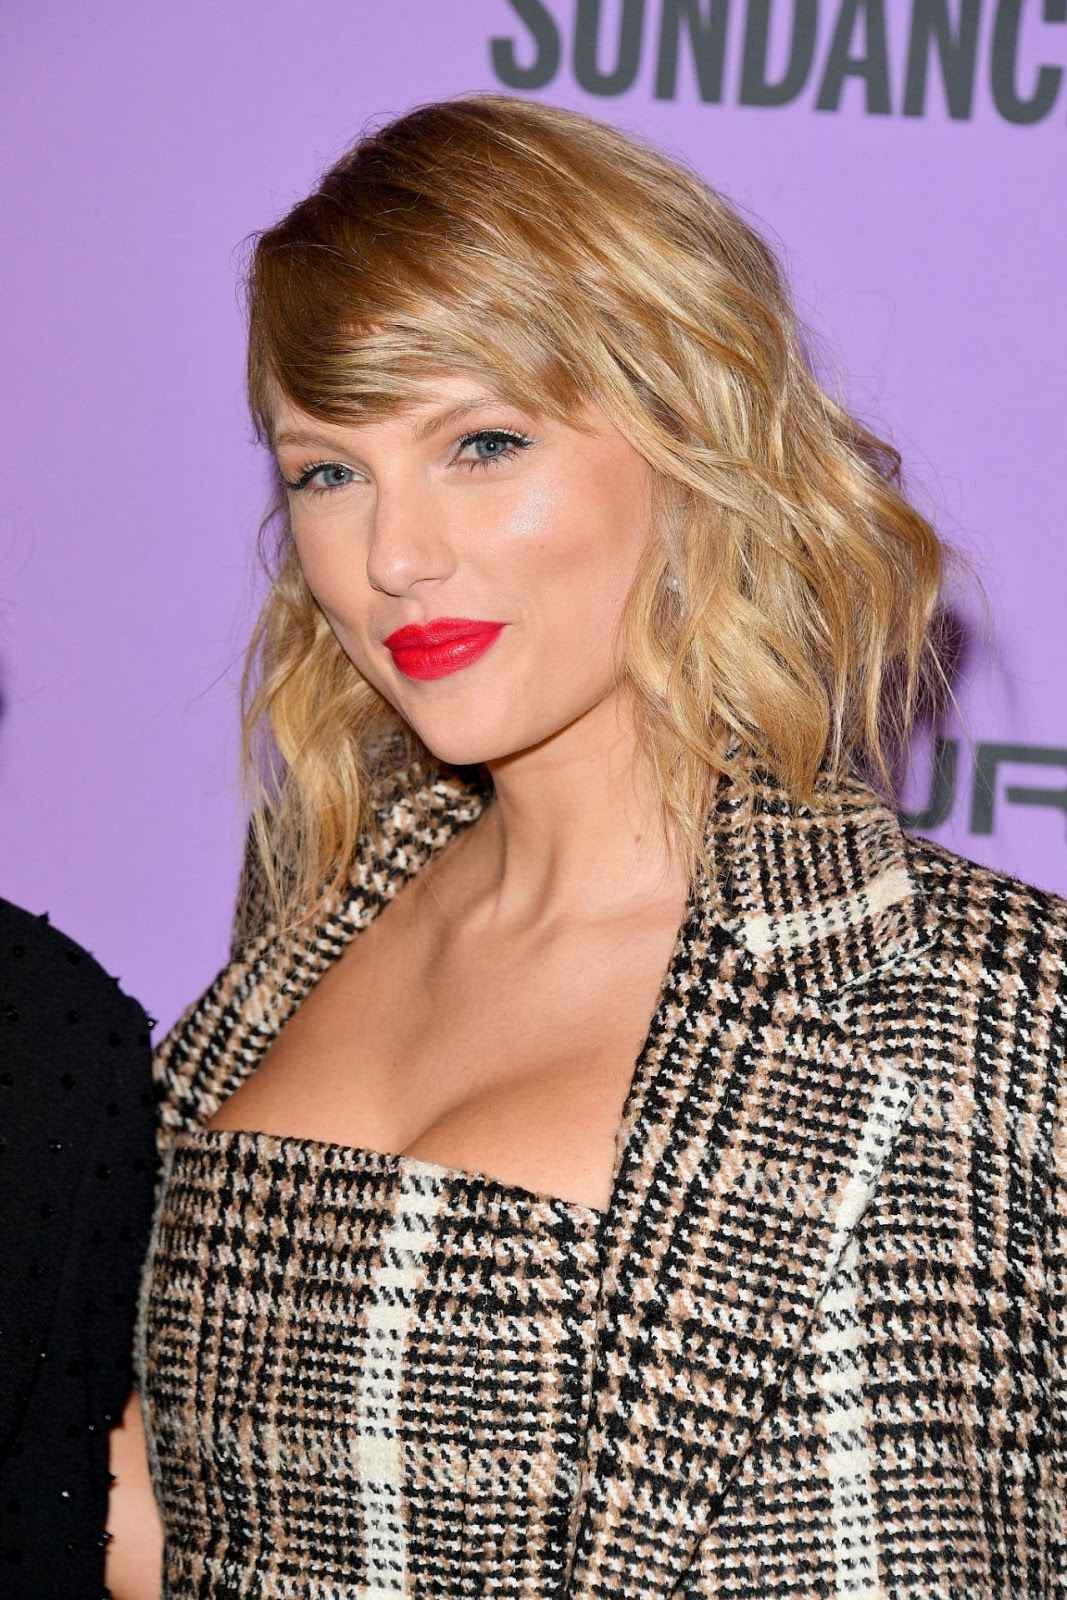 Taylor Swift - Miss Americana Premiere at Sundance Film Festival in Park City